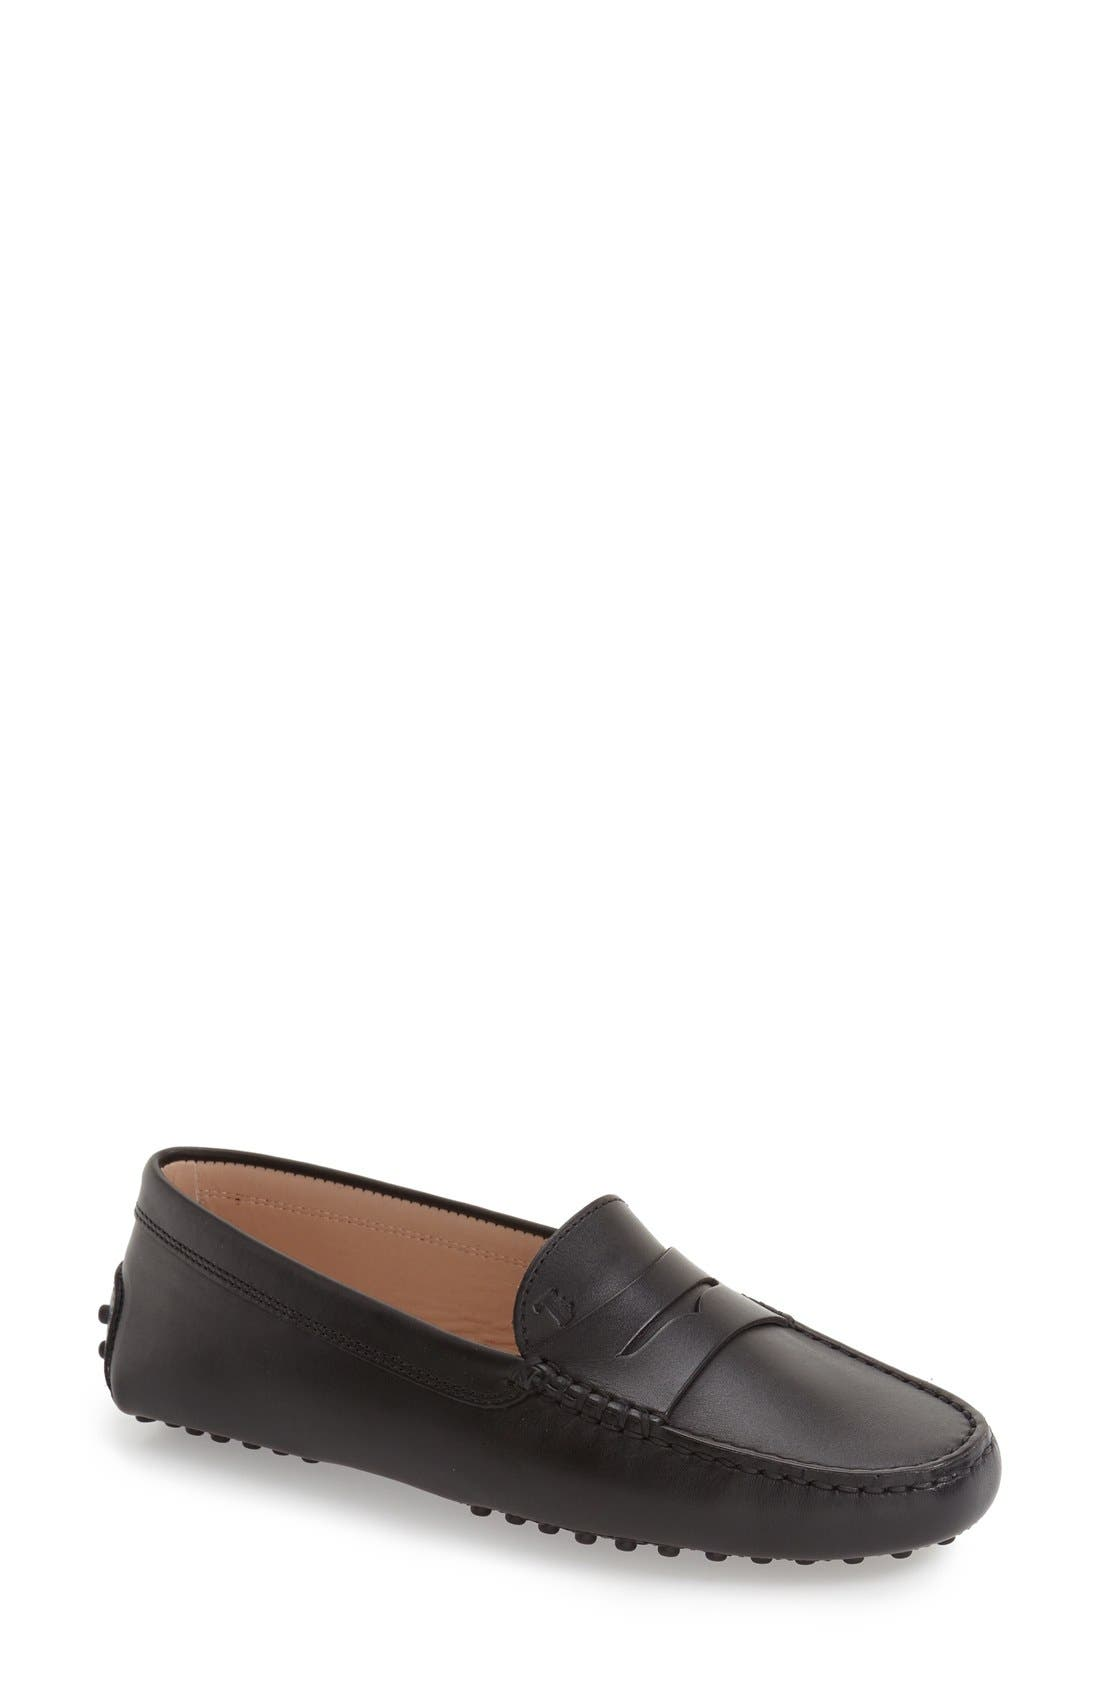 Tods Womens Mens Shoes Nordstrom D Island Slip On British Comfort Leather Dark Brown